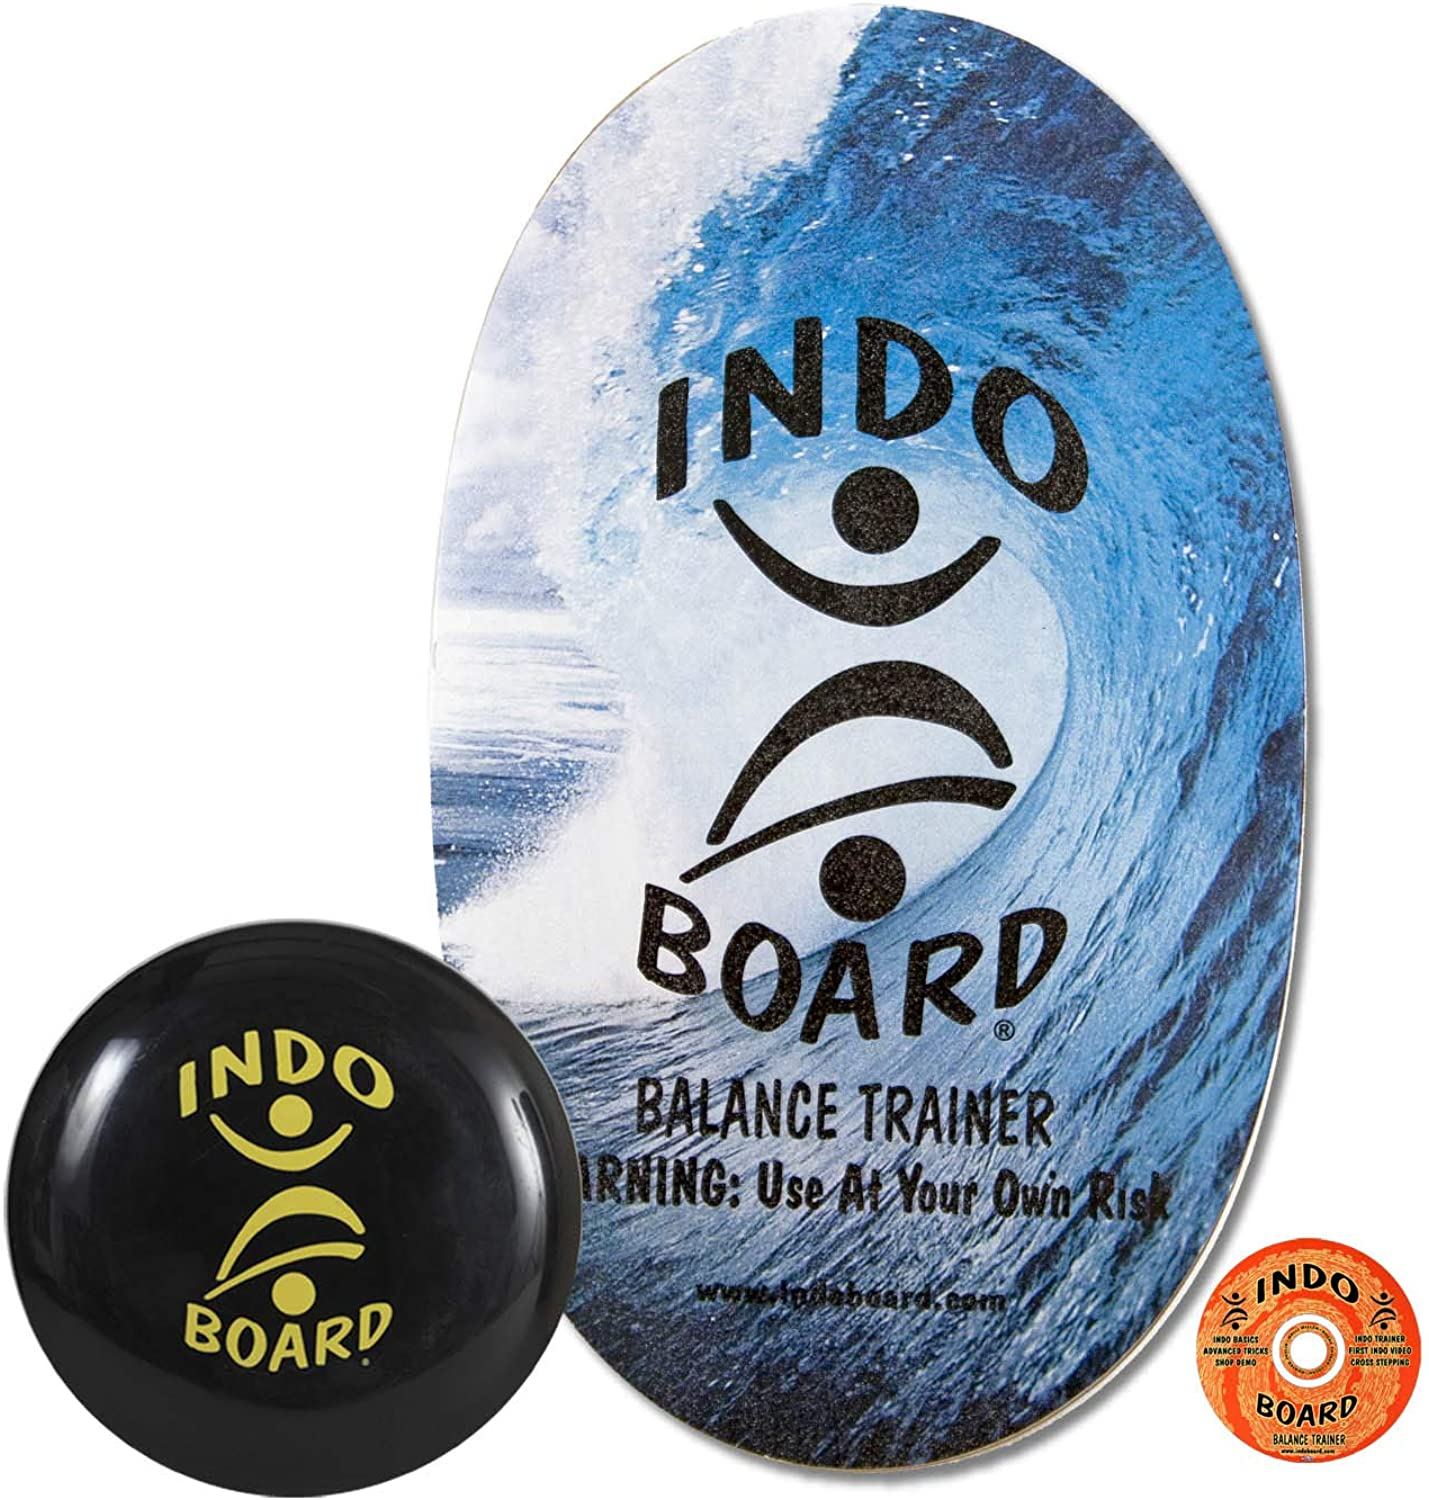 Indo Board Original Wave mit IndoFlo